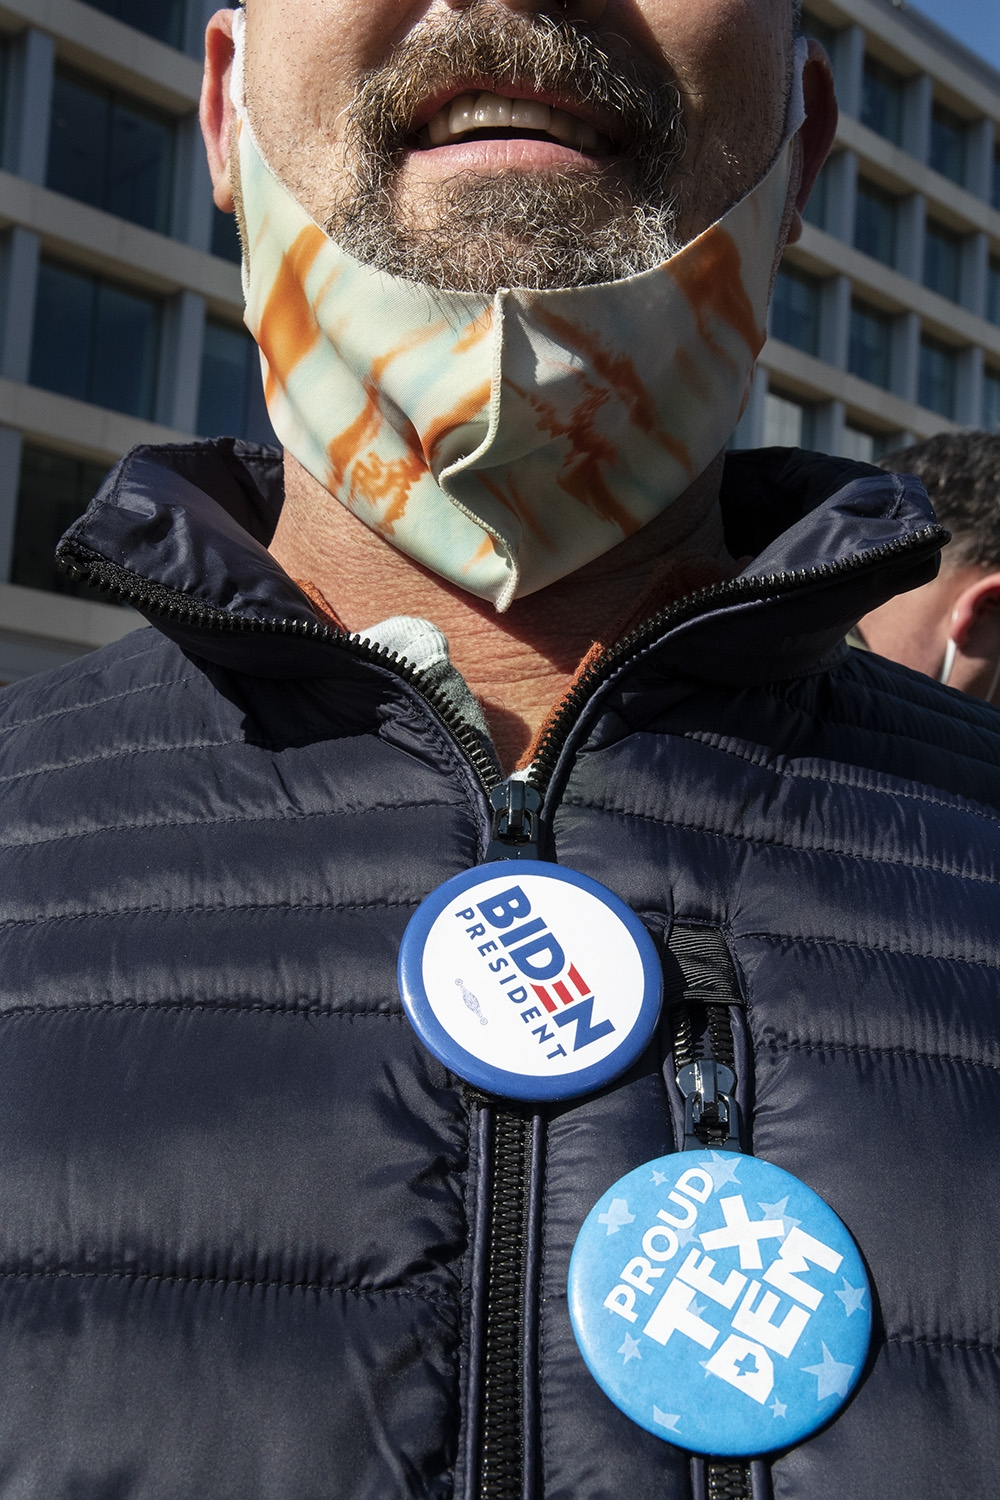 Image of a white man with a graying beard and mustache from the nose down. He is wearing a mint green and orange streaked facemask under his chin and a navy blue puffer winter jacket. On his jacket are two buttons: a red, white, and blue button that says BIDEN PRESIDENT and a light blue button that says PROUD TEX DEM.